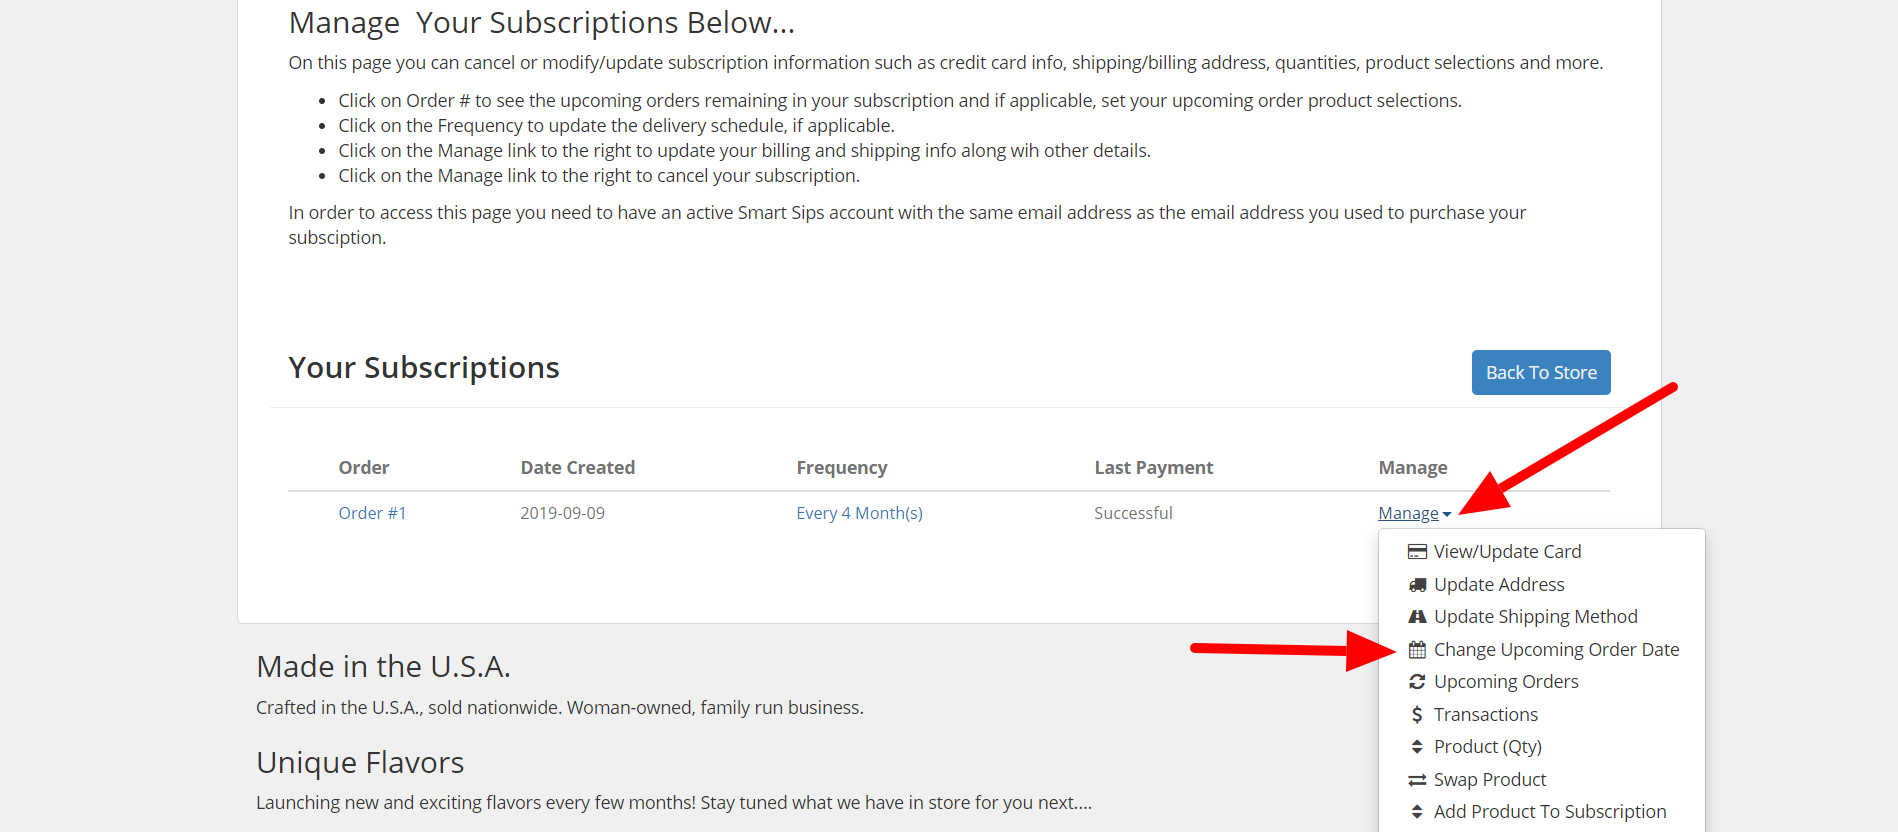 Manage Each Subscription